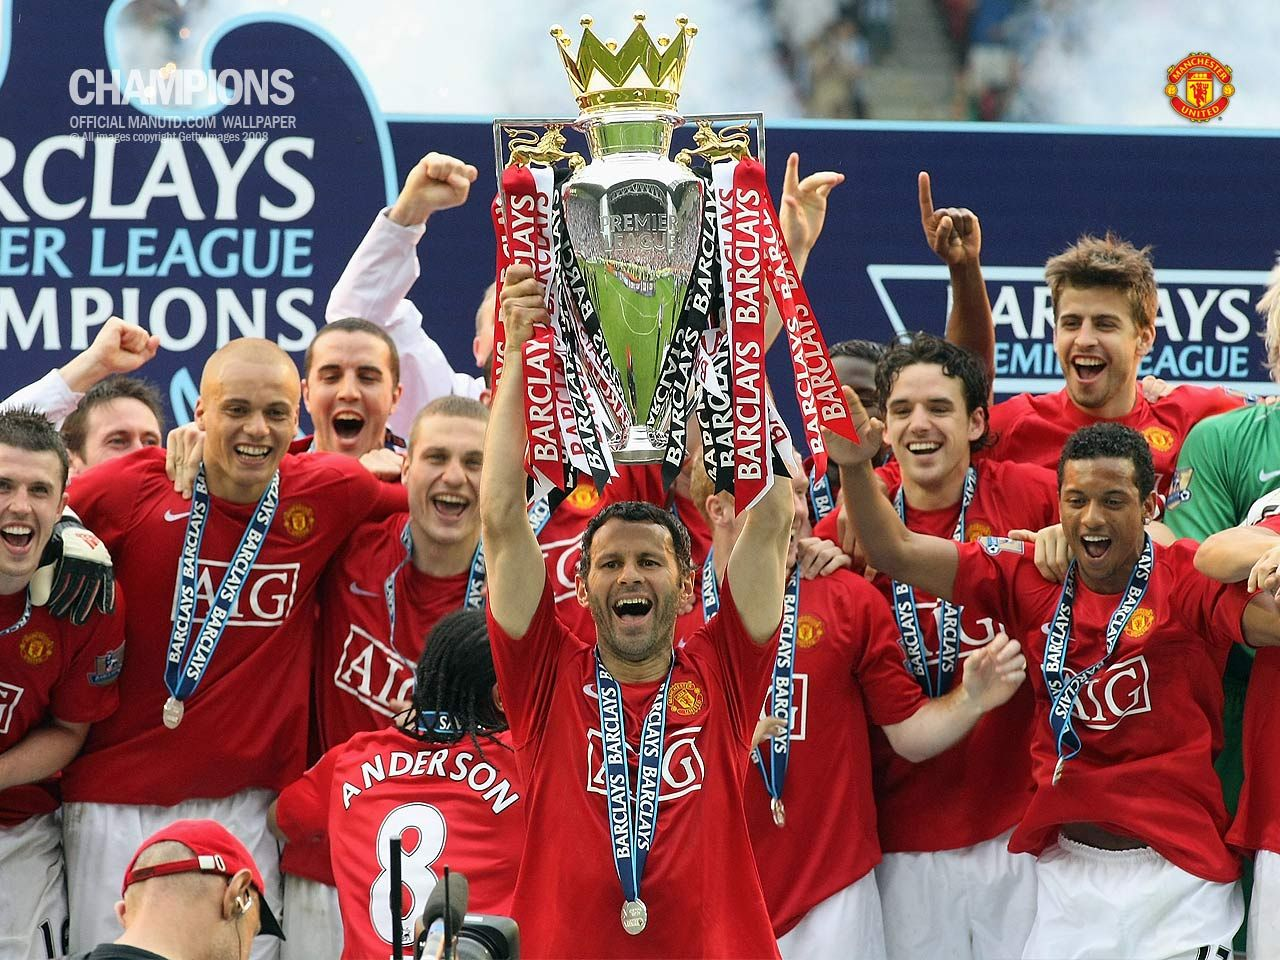 Champions 2007 2008 1 manchester united wallpaper champions 2007 2008 1 voltagebd Image collections